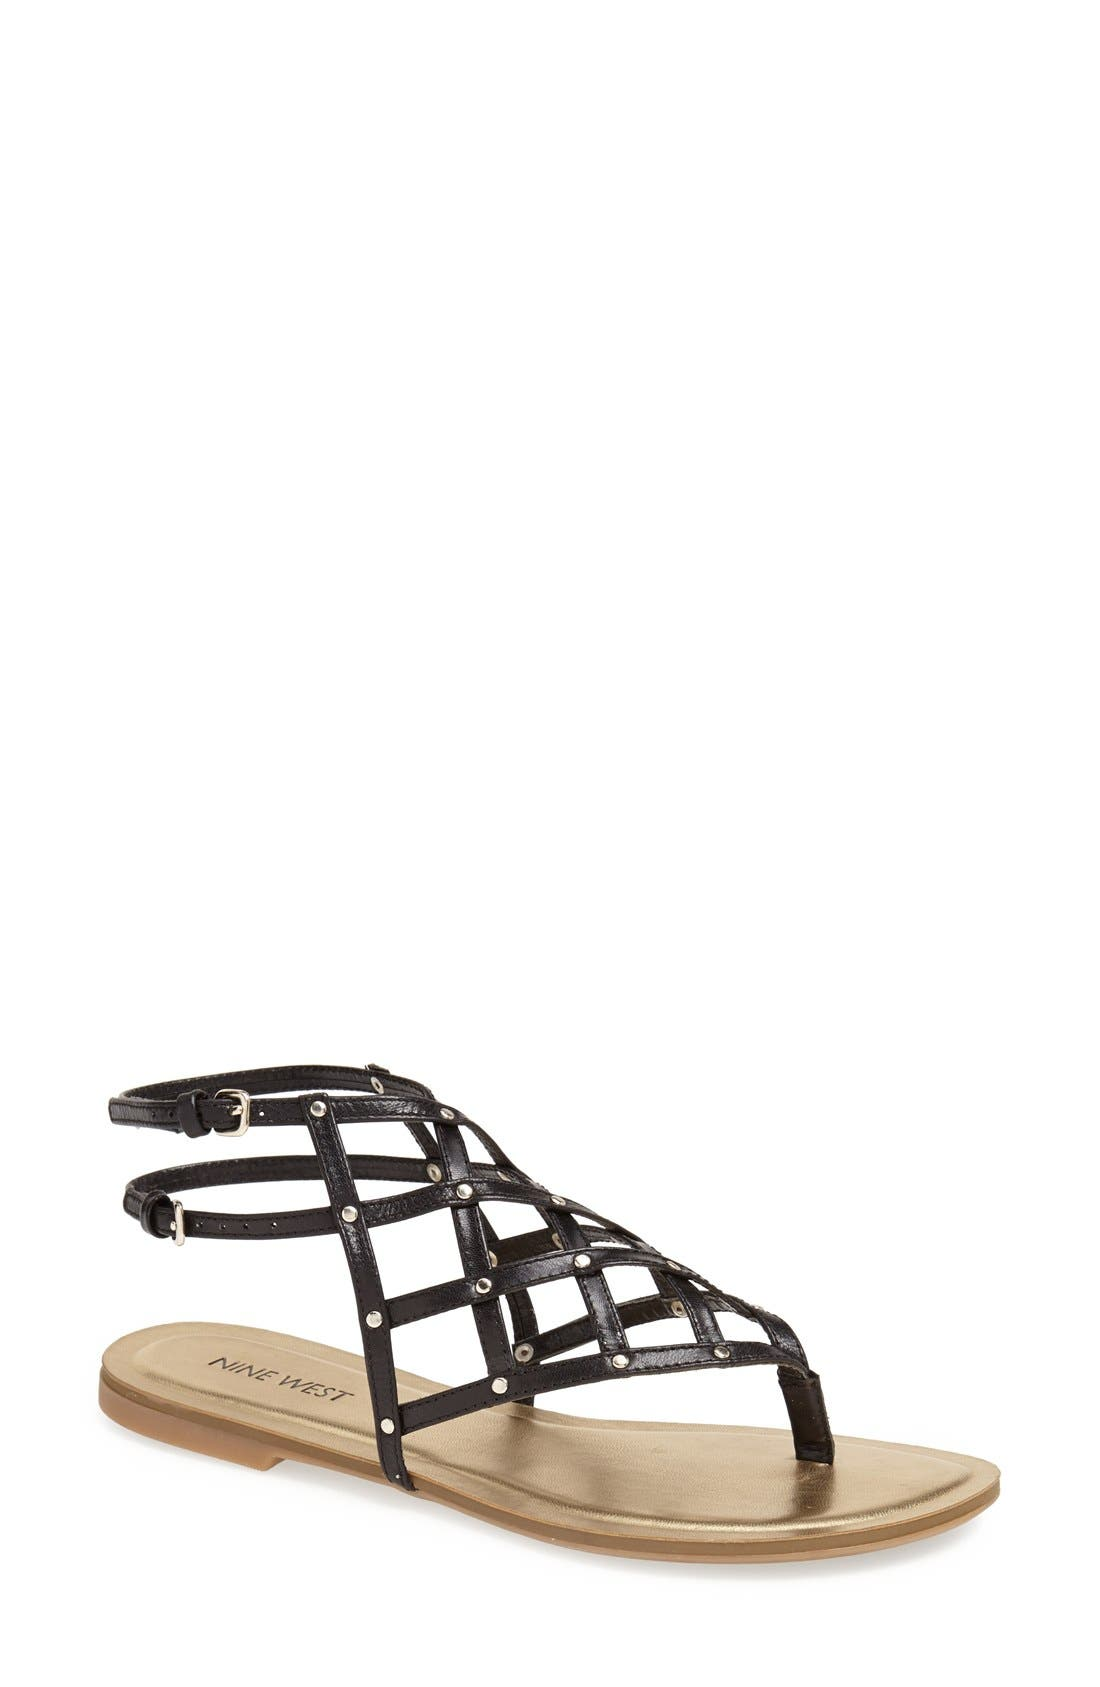 Alternate Image 1 Selected - Nine West 'Plaidperfect' Sandal